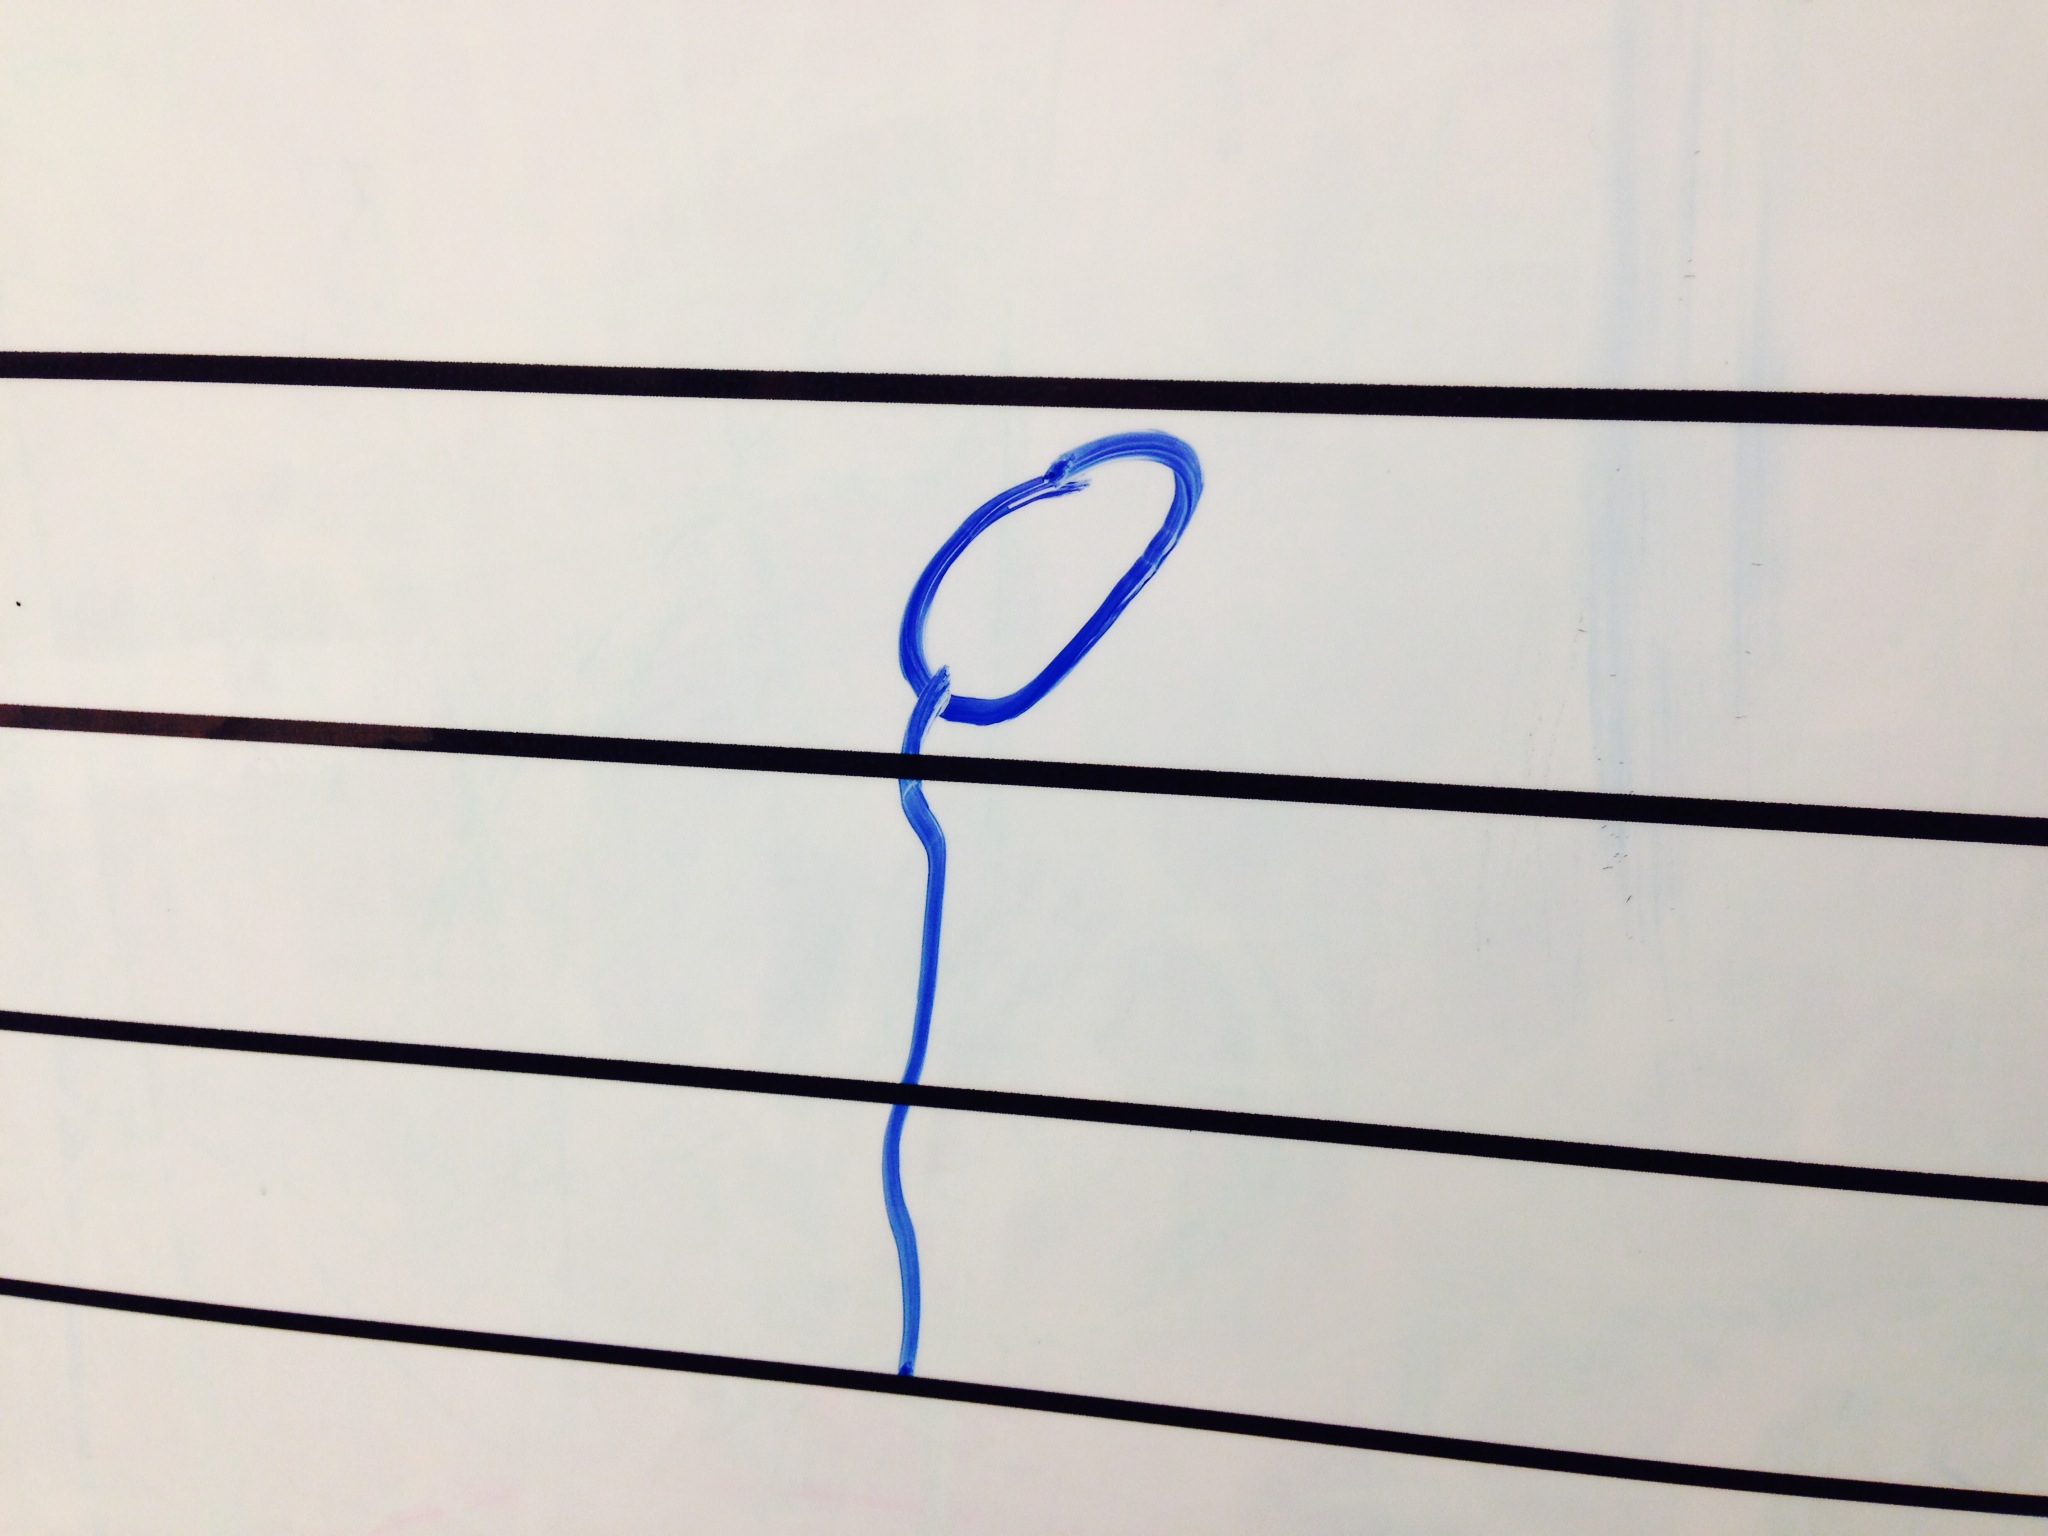 Half Note or Sperm?